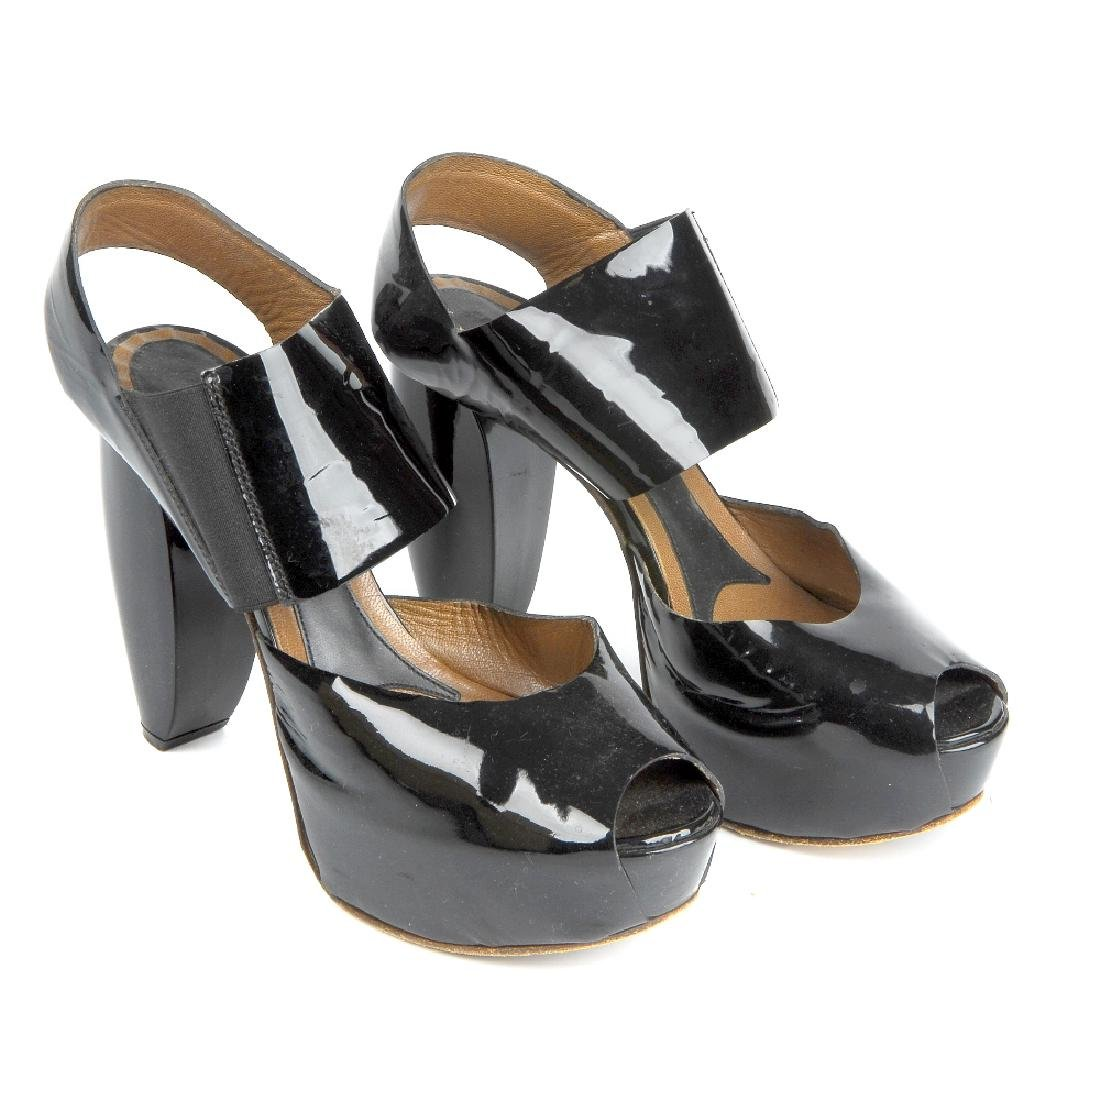 MARNI - a pair of platform sandals. Crafted from black